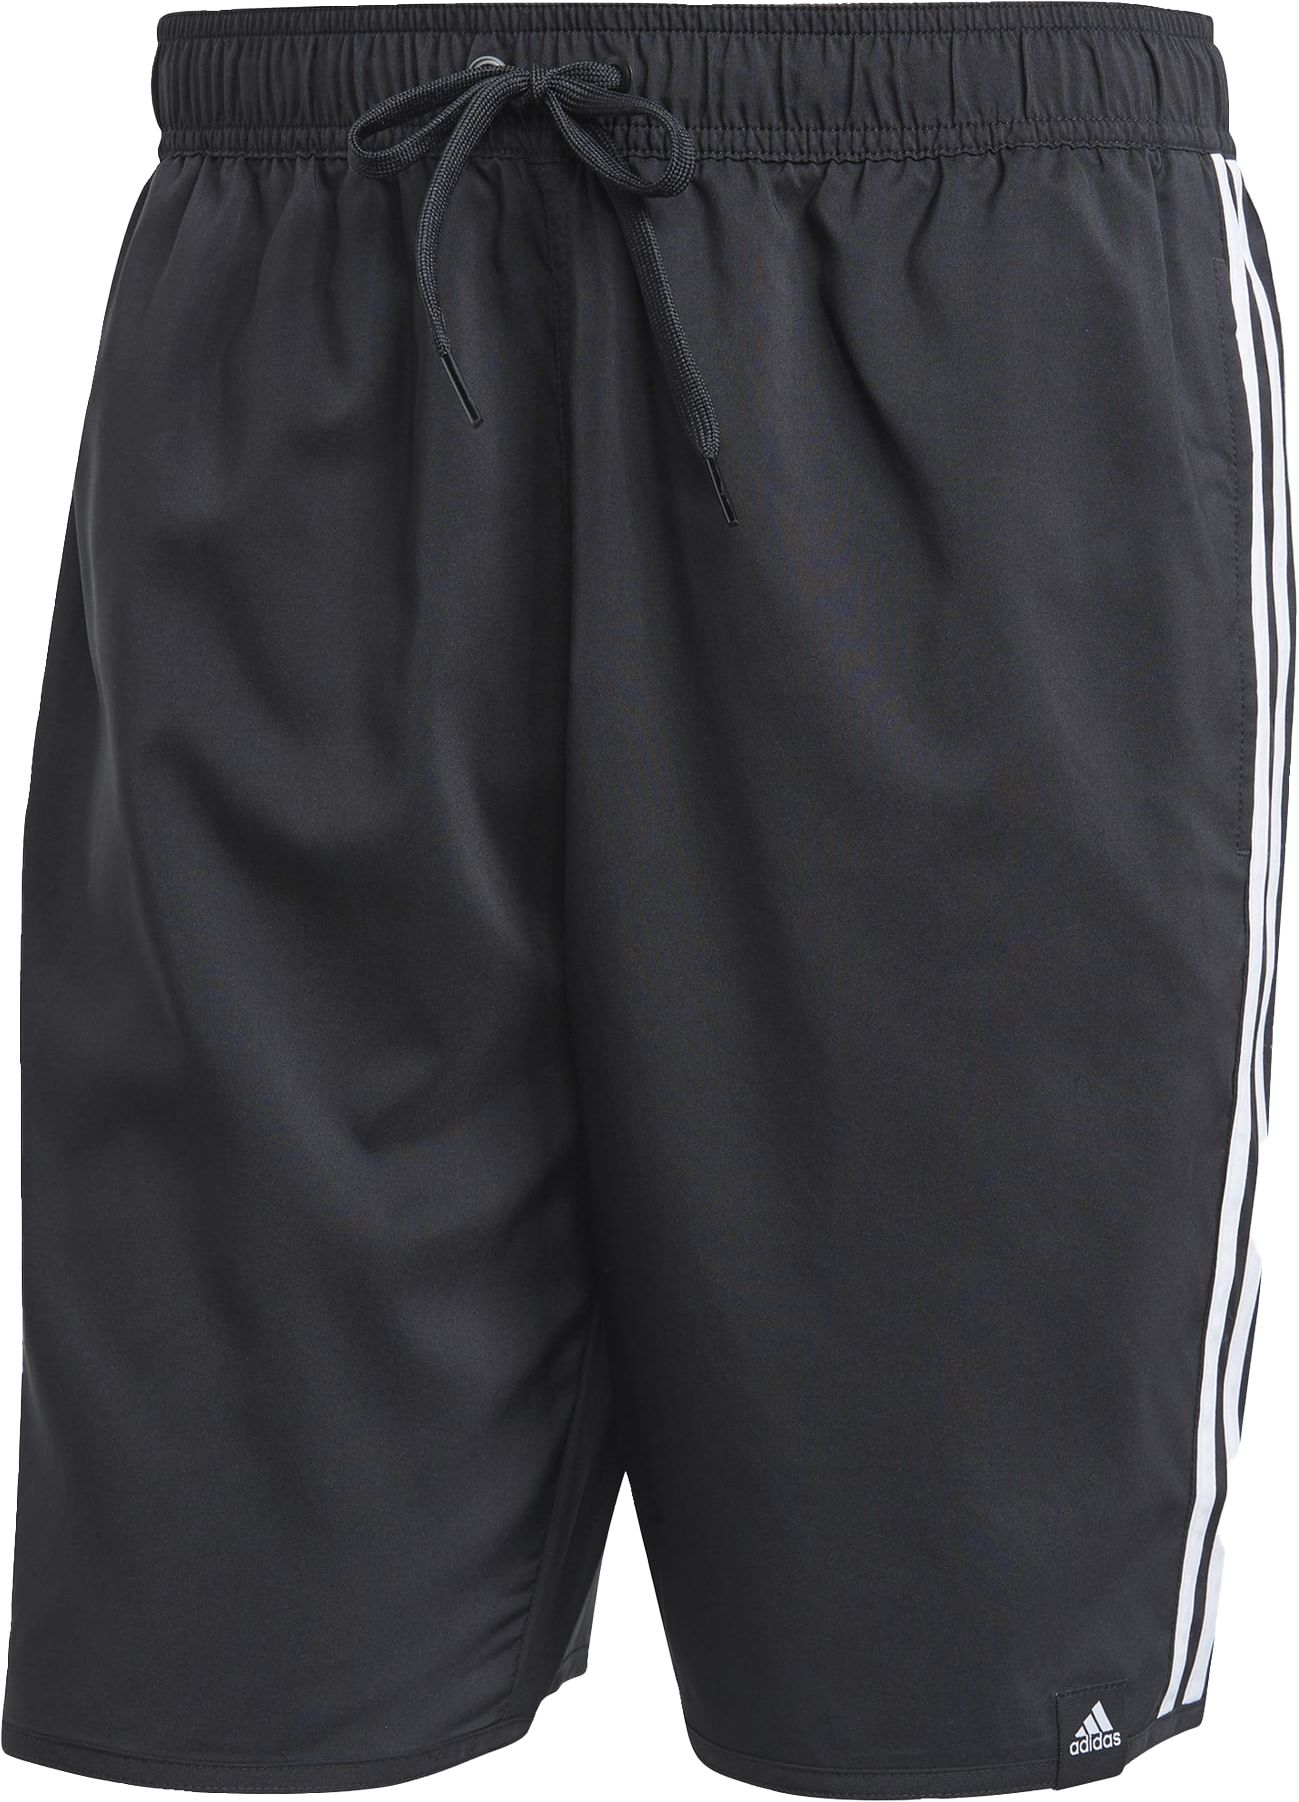 355338101101, Classic-Length 3-Stripes Swim Shorts, ADIDAS, Detail